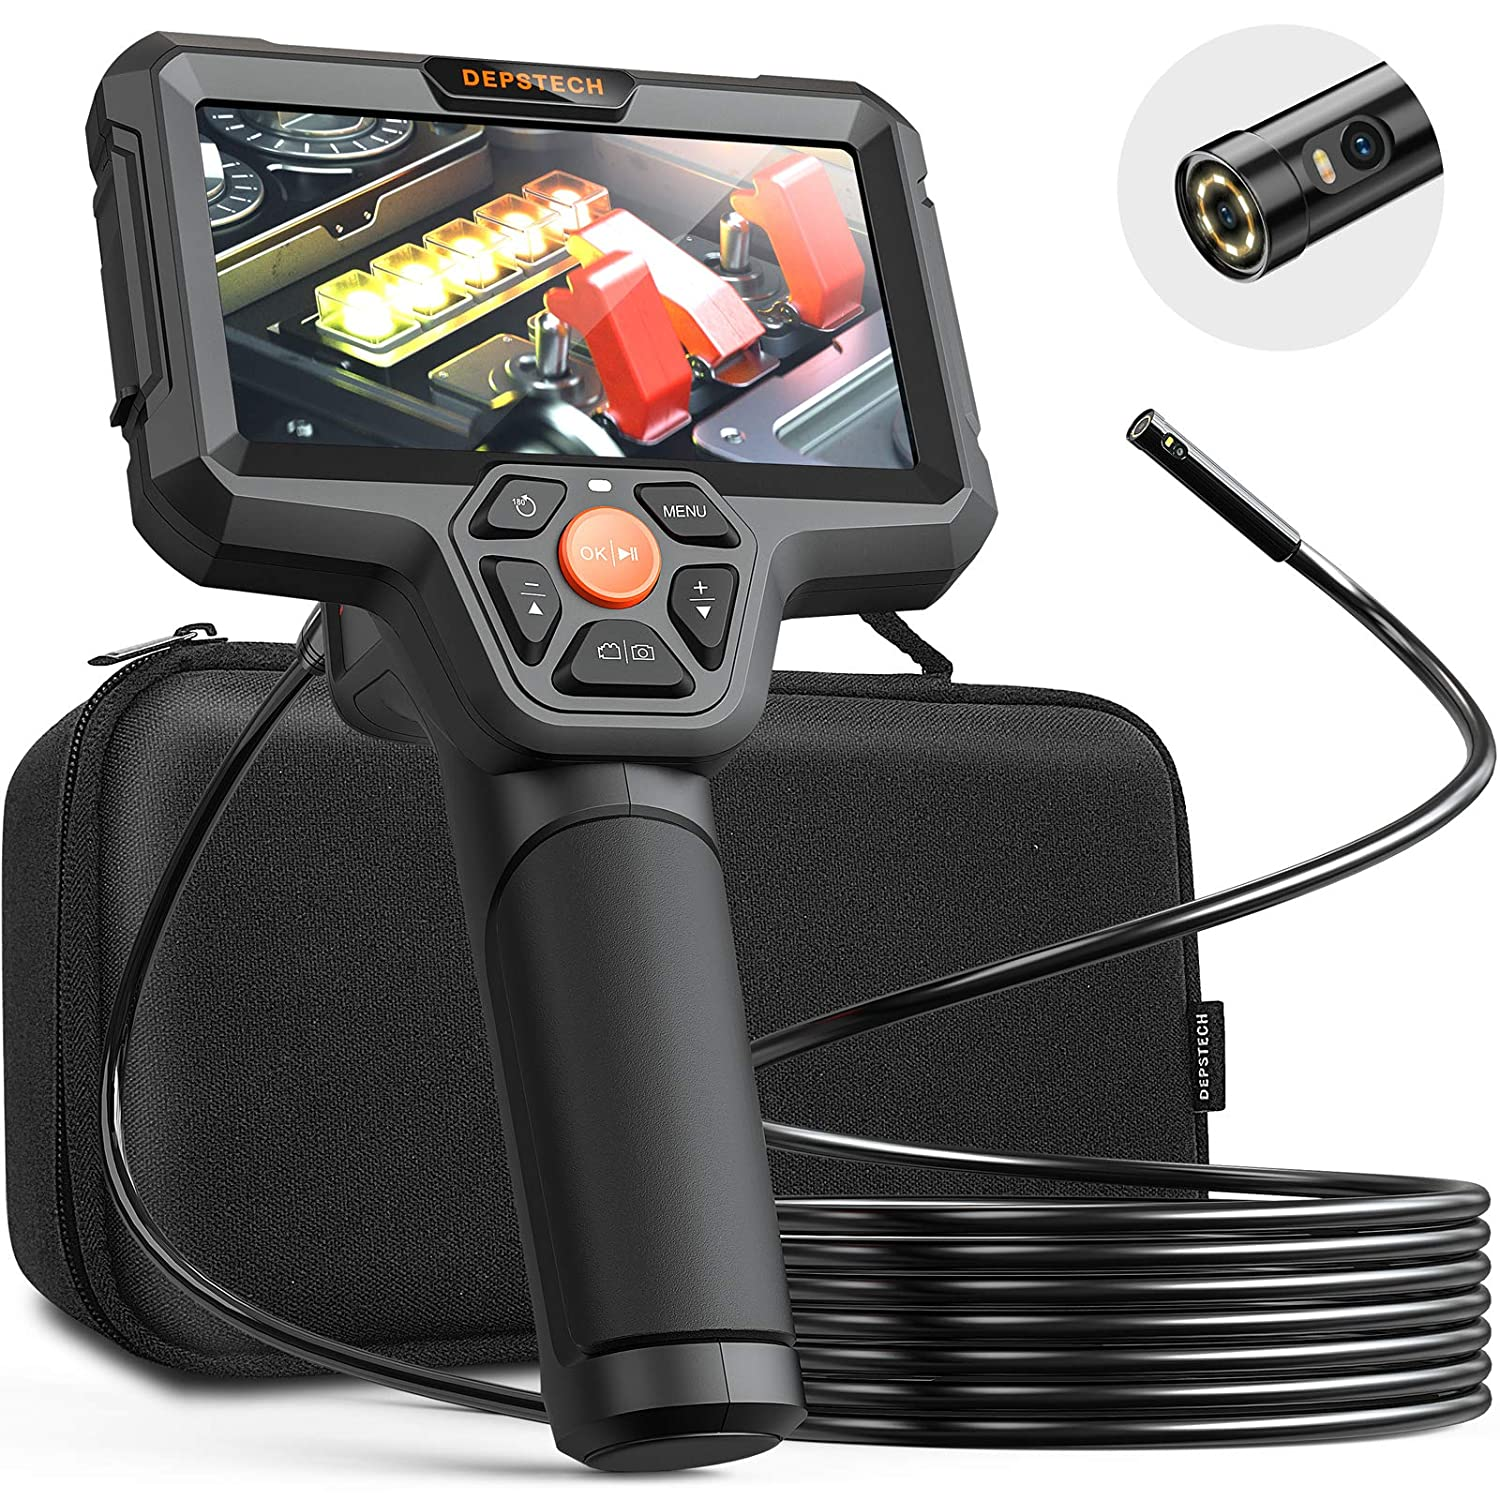 DEPSTECH Dual Lens Inspection Camera, Endoscope with 5